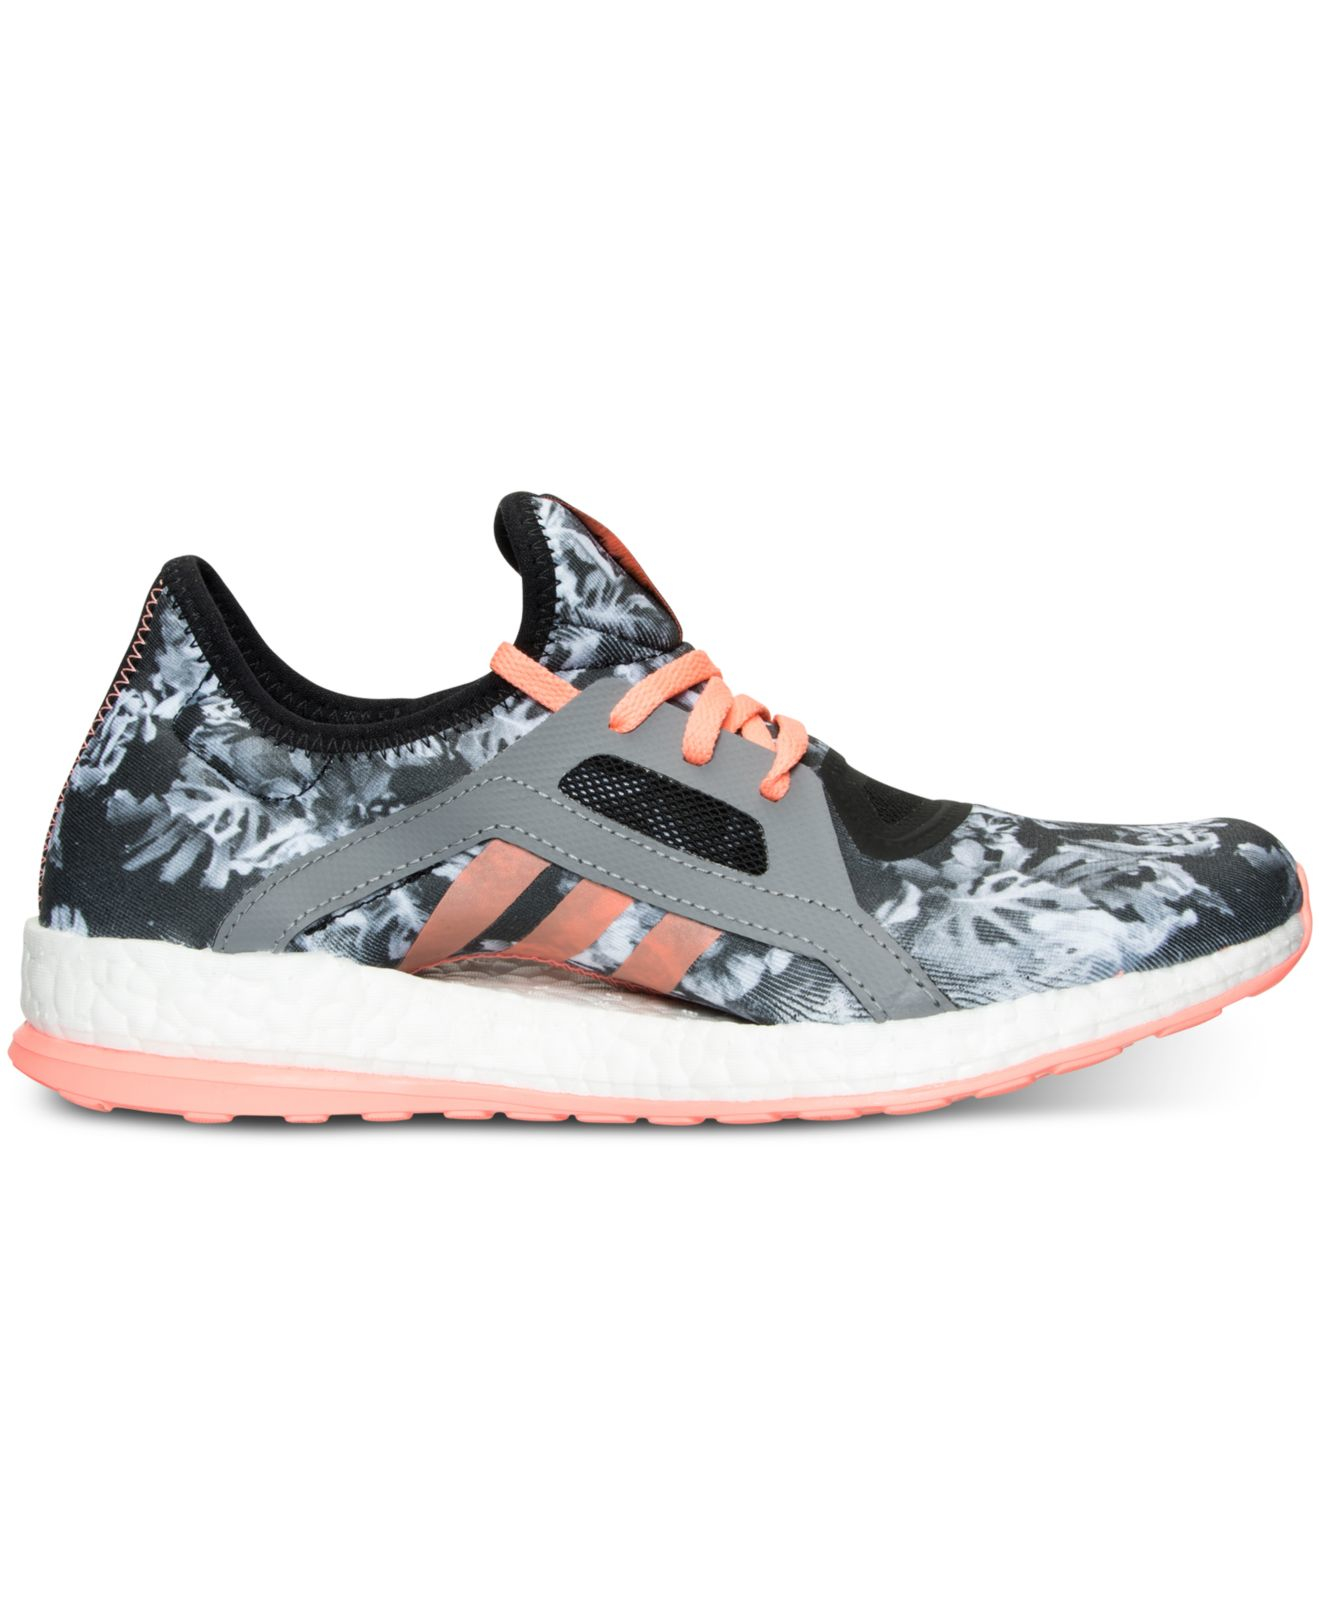 87980be13c560 adidas pure boost trainers black shoes for australia